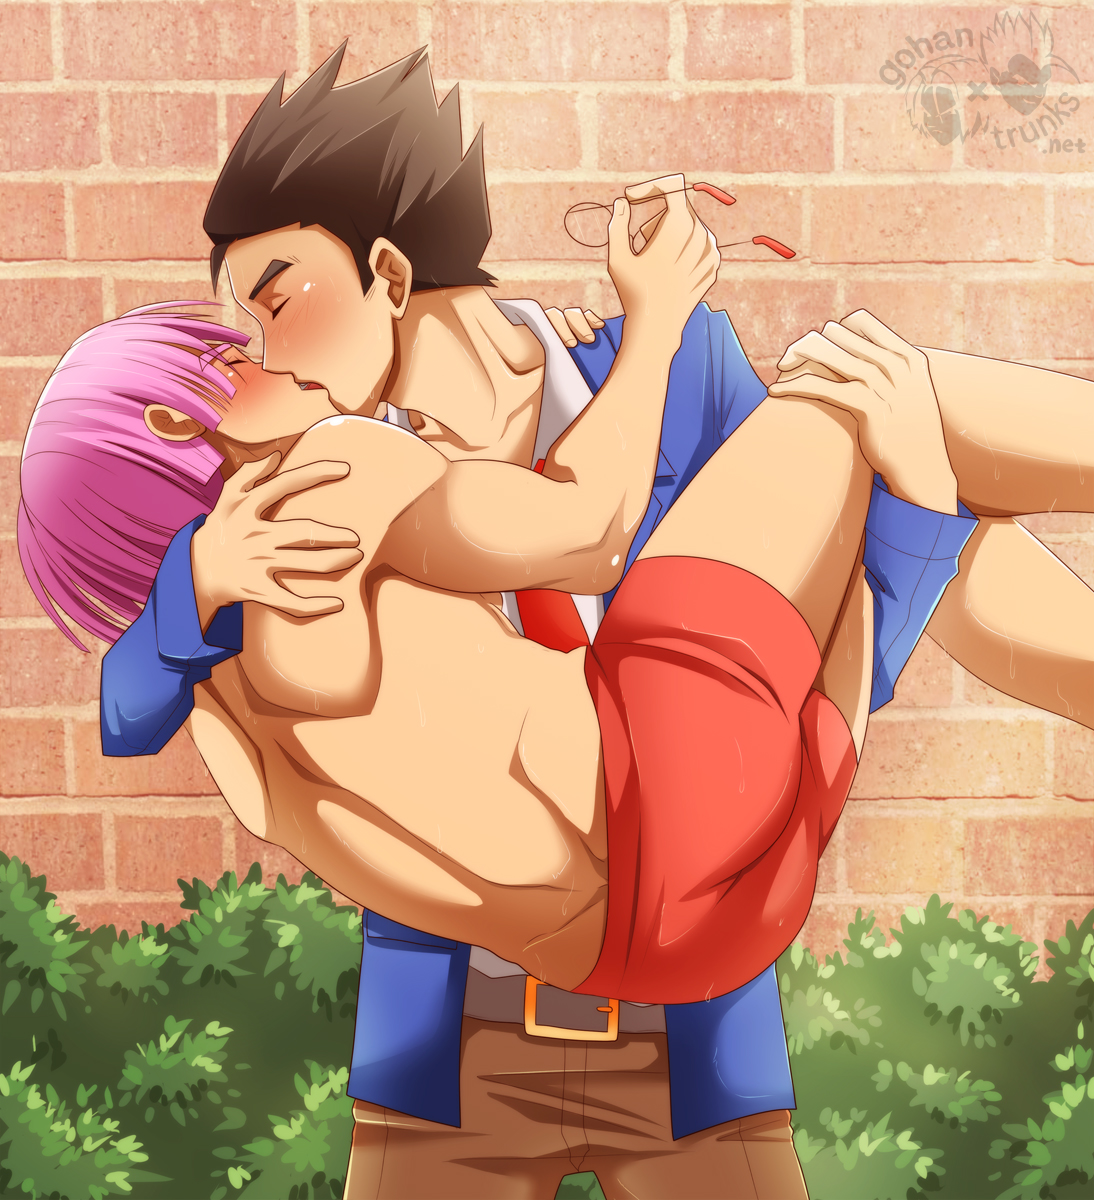 Trunks having sex with gohan